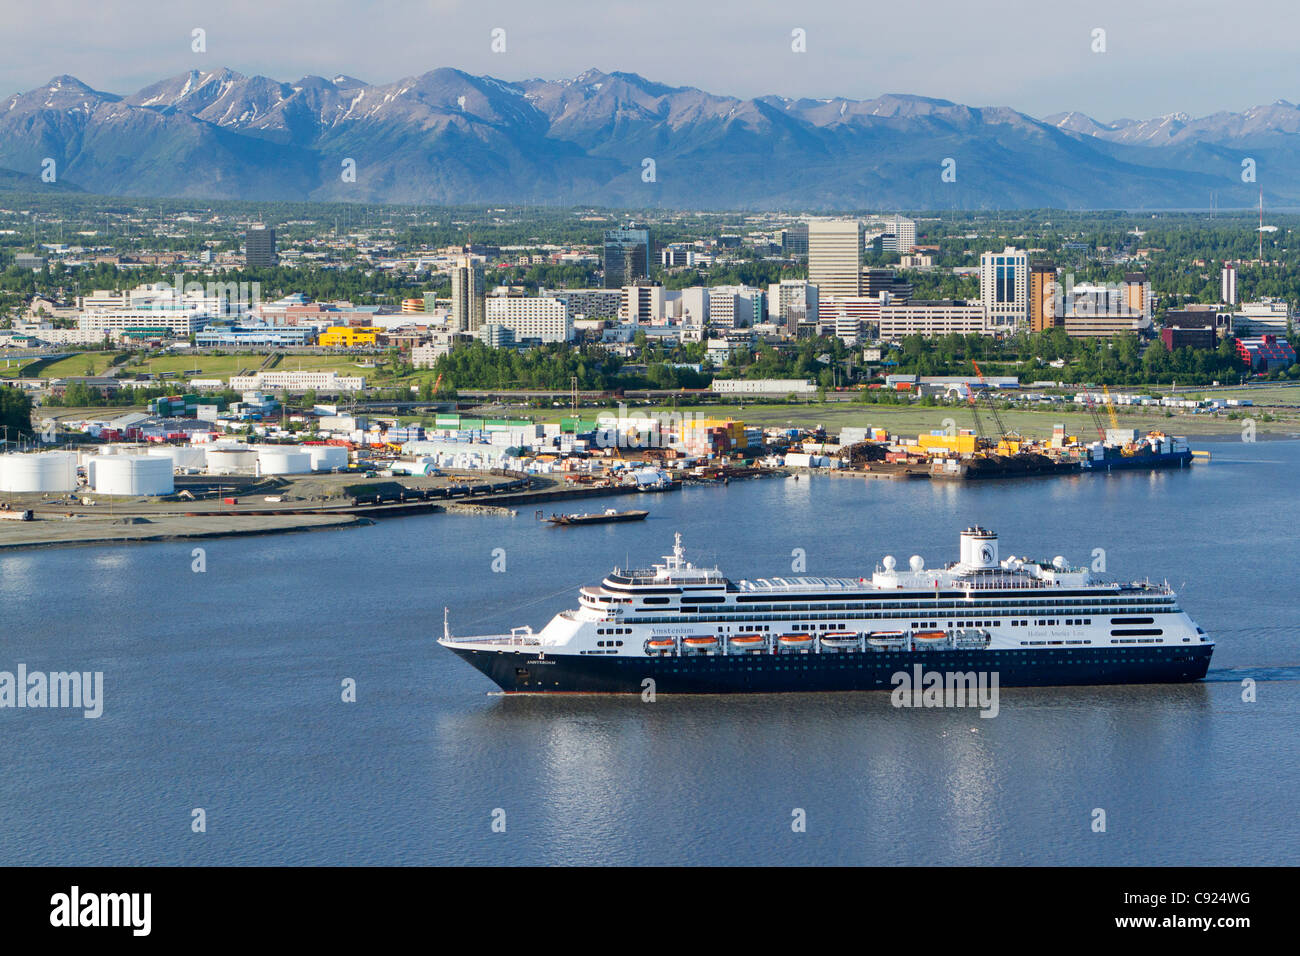 Holland America cruise ship Amsterdam arrives in Cook Inlet with downtown Anchorage in the background, Southcentral - Stock Image